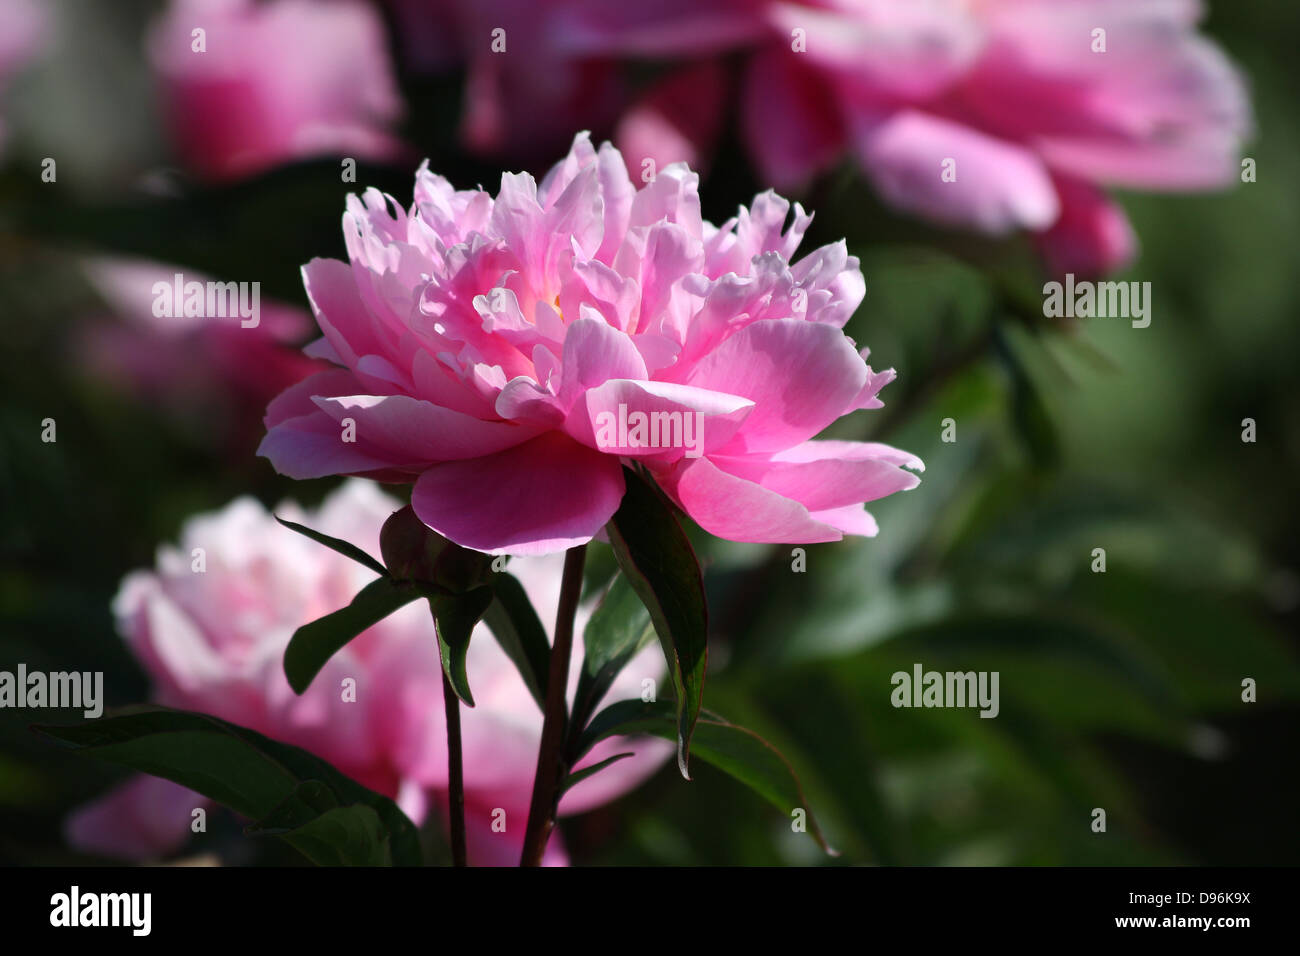 Pink Peony, Peonies with open flowers Stock Photo